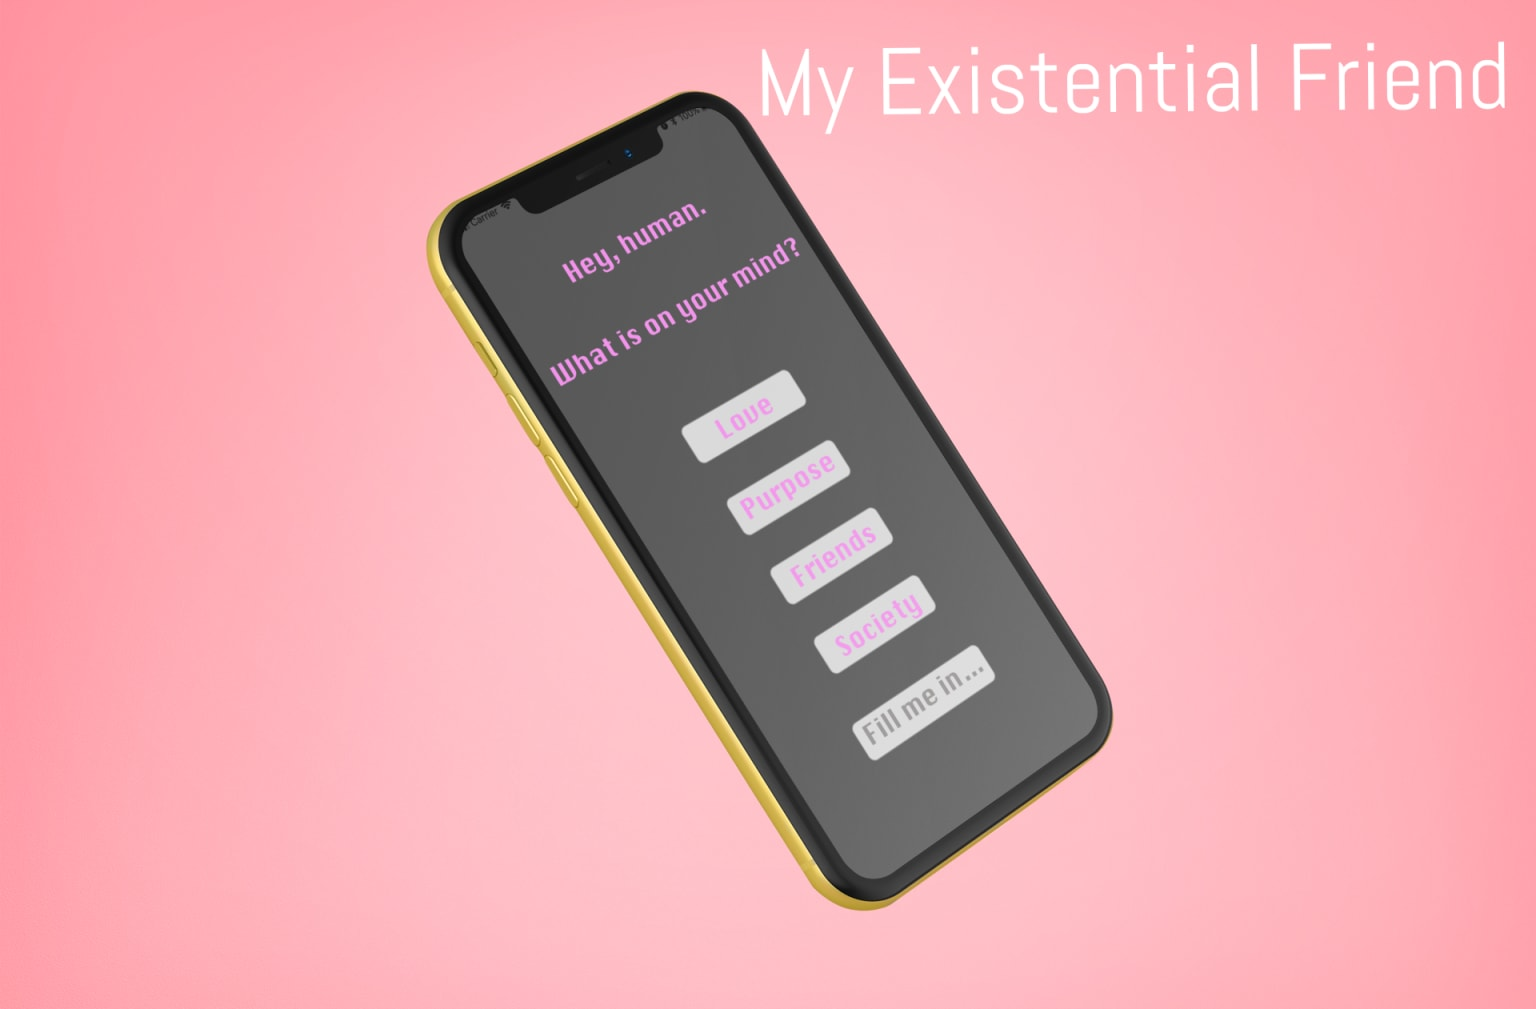 My Existential Buddy